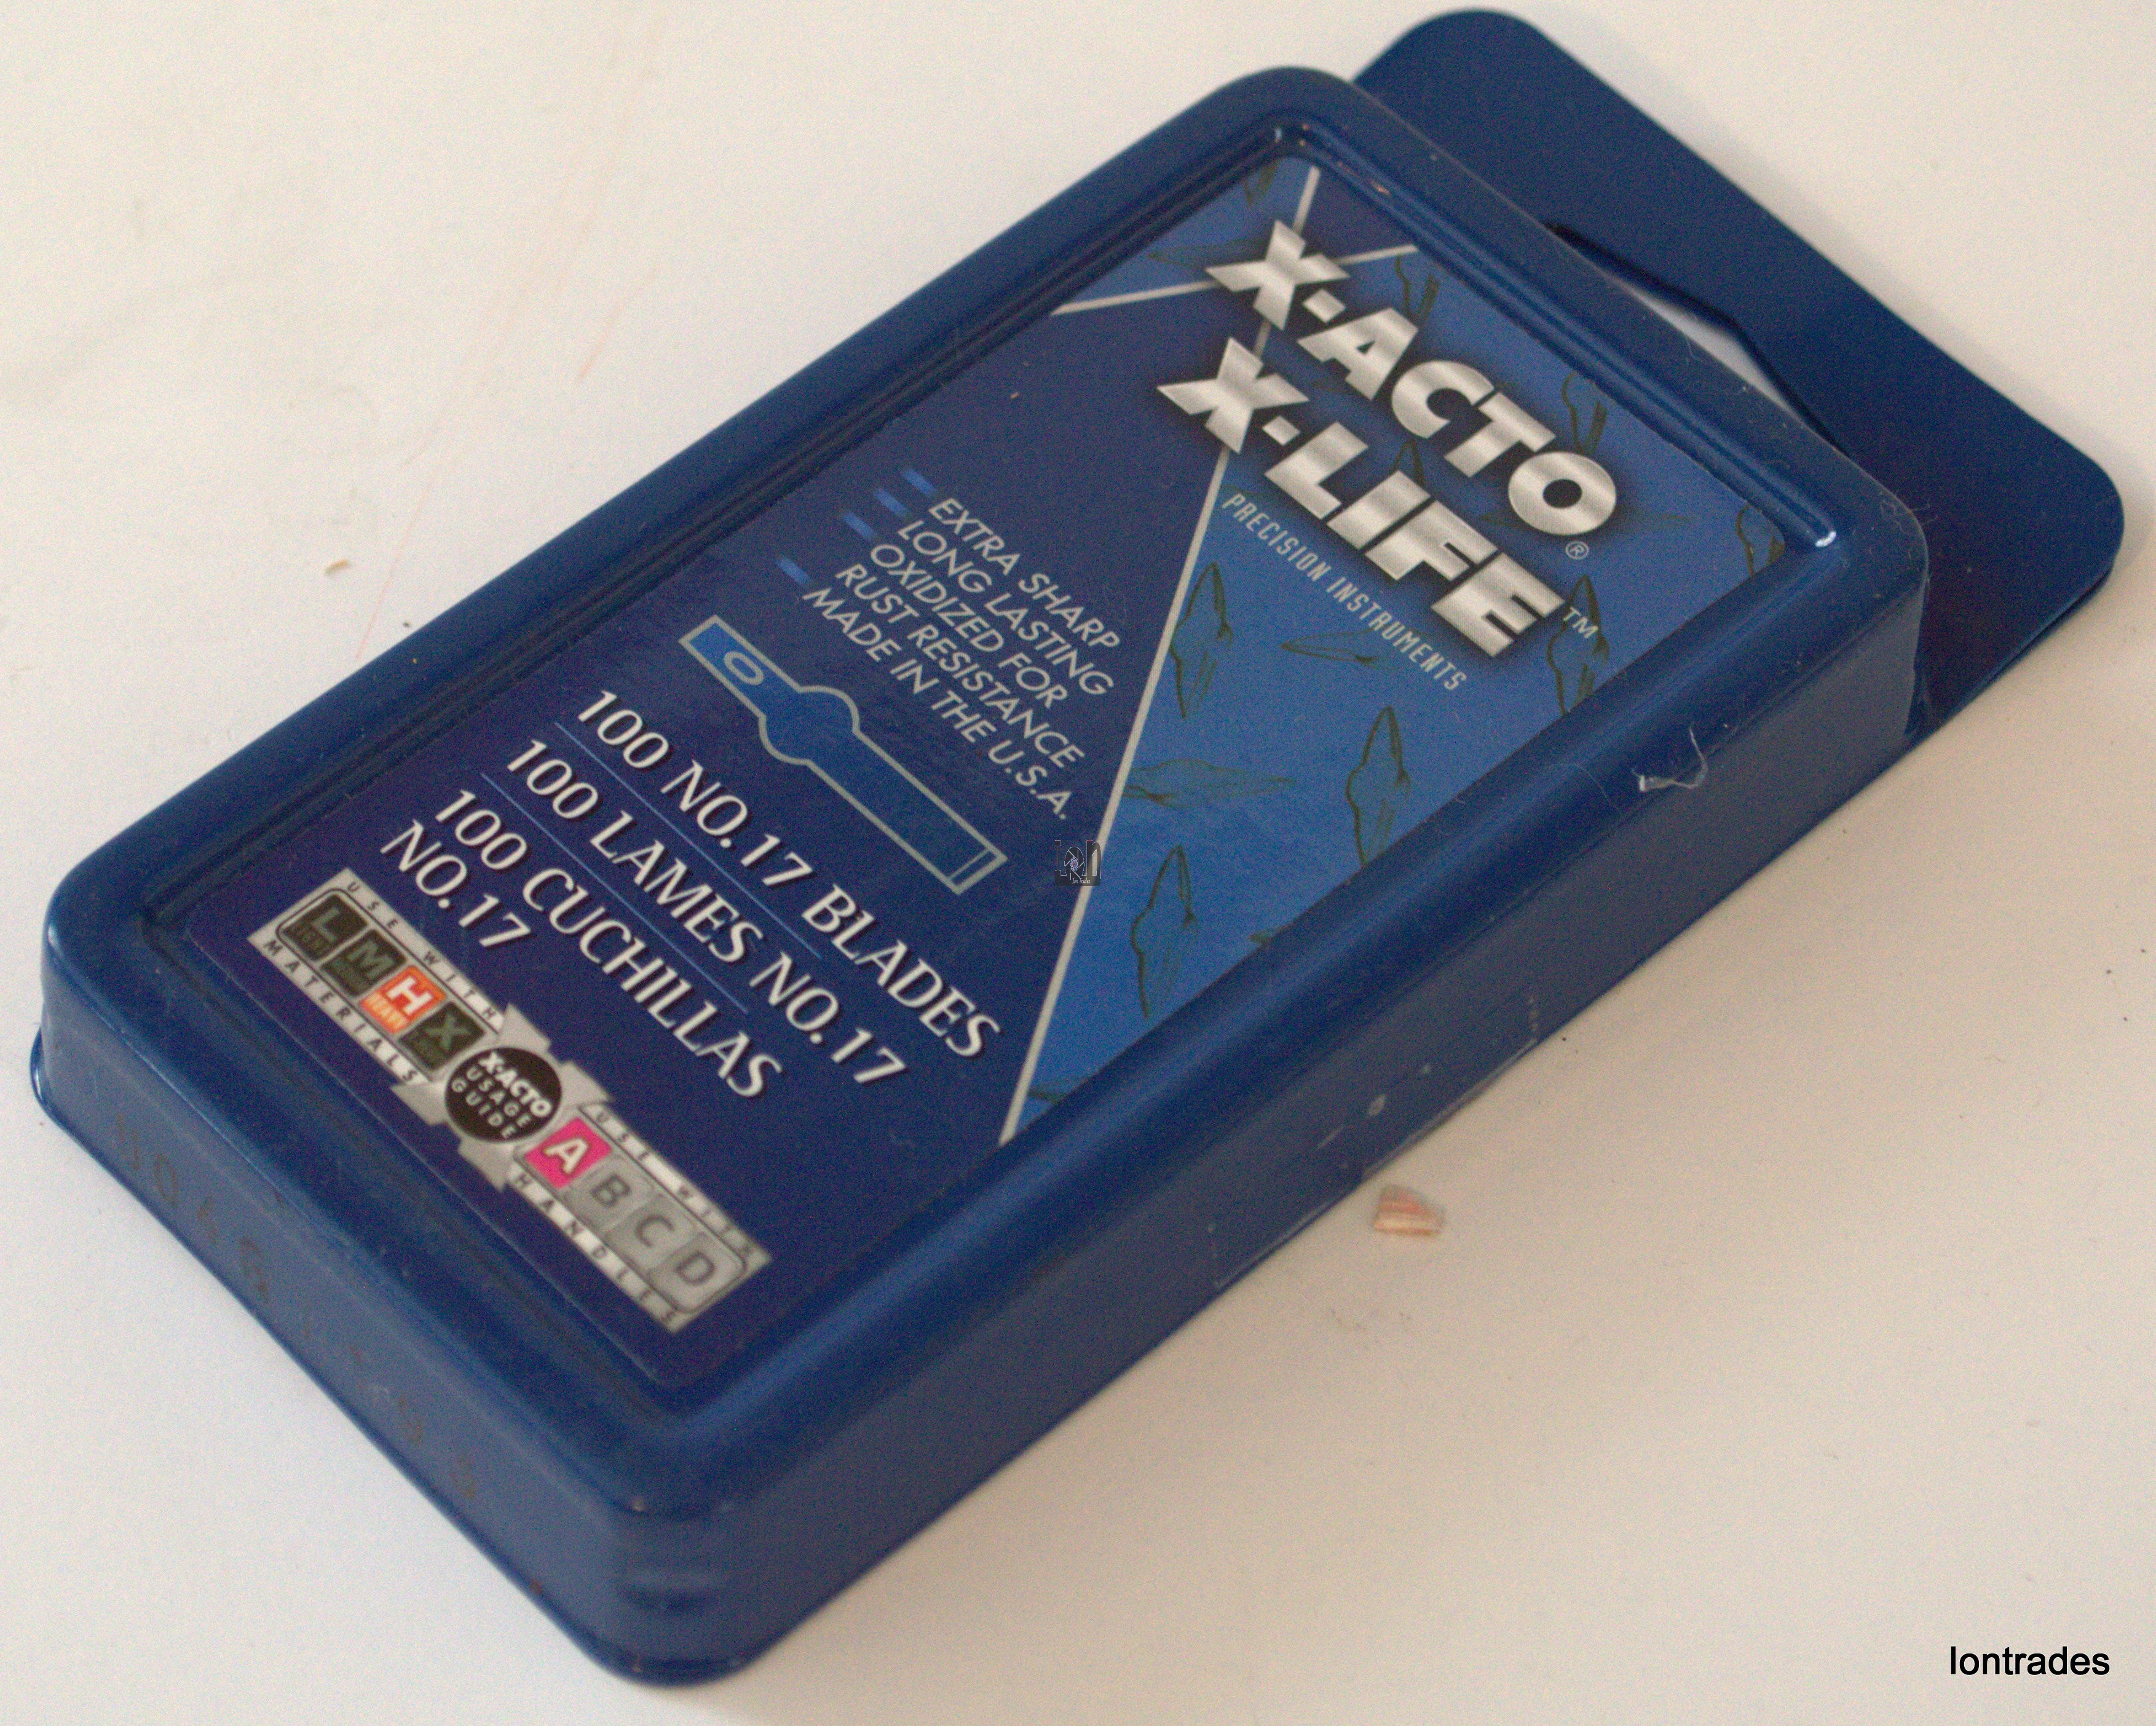 X-Acto X-Life 100pk No. 17 Blades Replacements